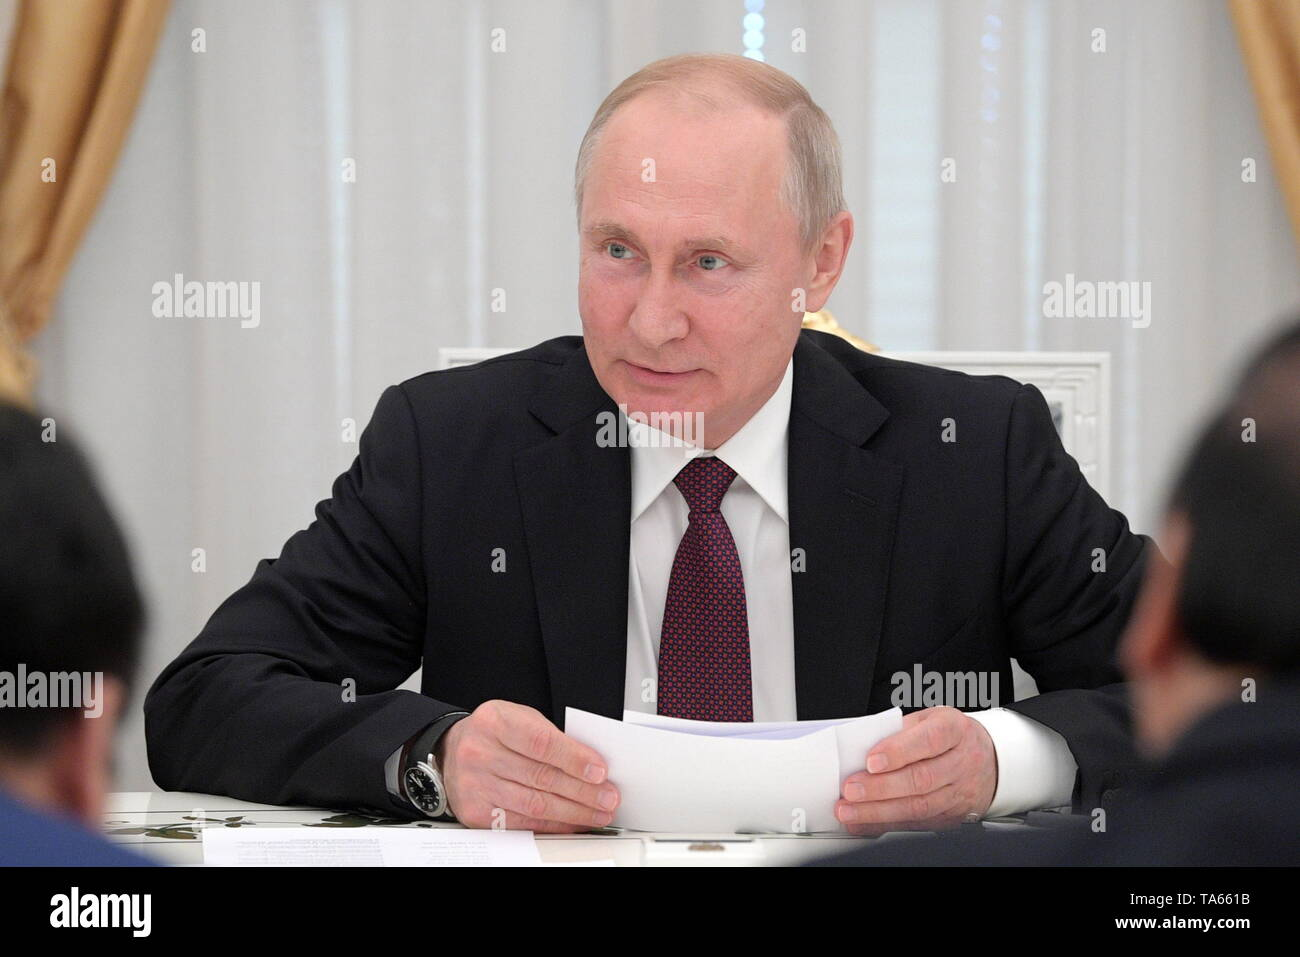 Moscow, Russia. 22nd May, 2019. MOSCOW, RUSSIA - MAY 22, 2019: Russia's President Vladimir Putin during a meeting with Vietnam's Prime Minister Nguyen Xuan Phuc at the Moscow Kremlin. Alexei Druzhinin/Russian Presidential Press and Information Office/TASS Credit: ITAR-TASS News Agency/Alamy Live News - Stock Image